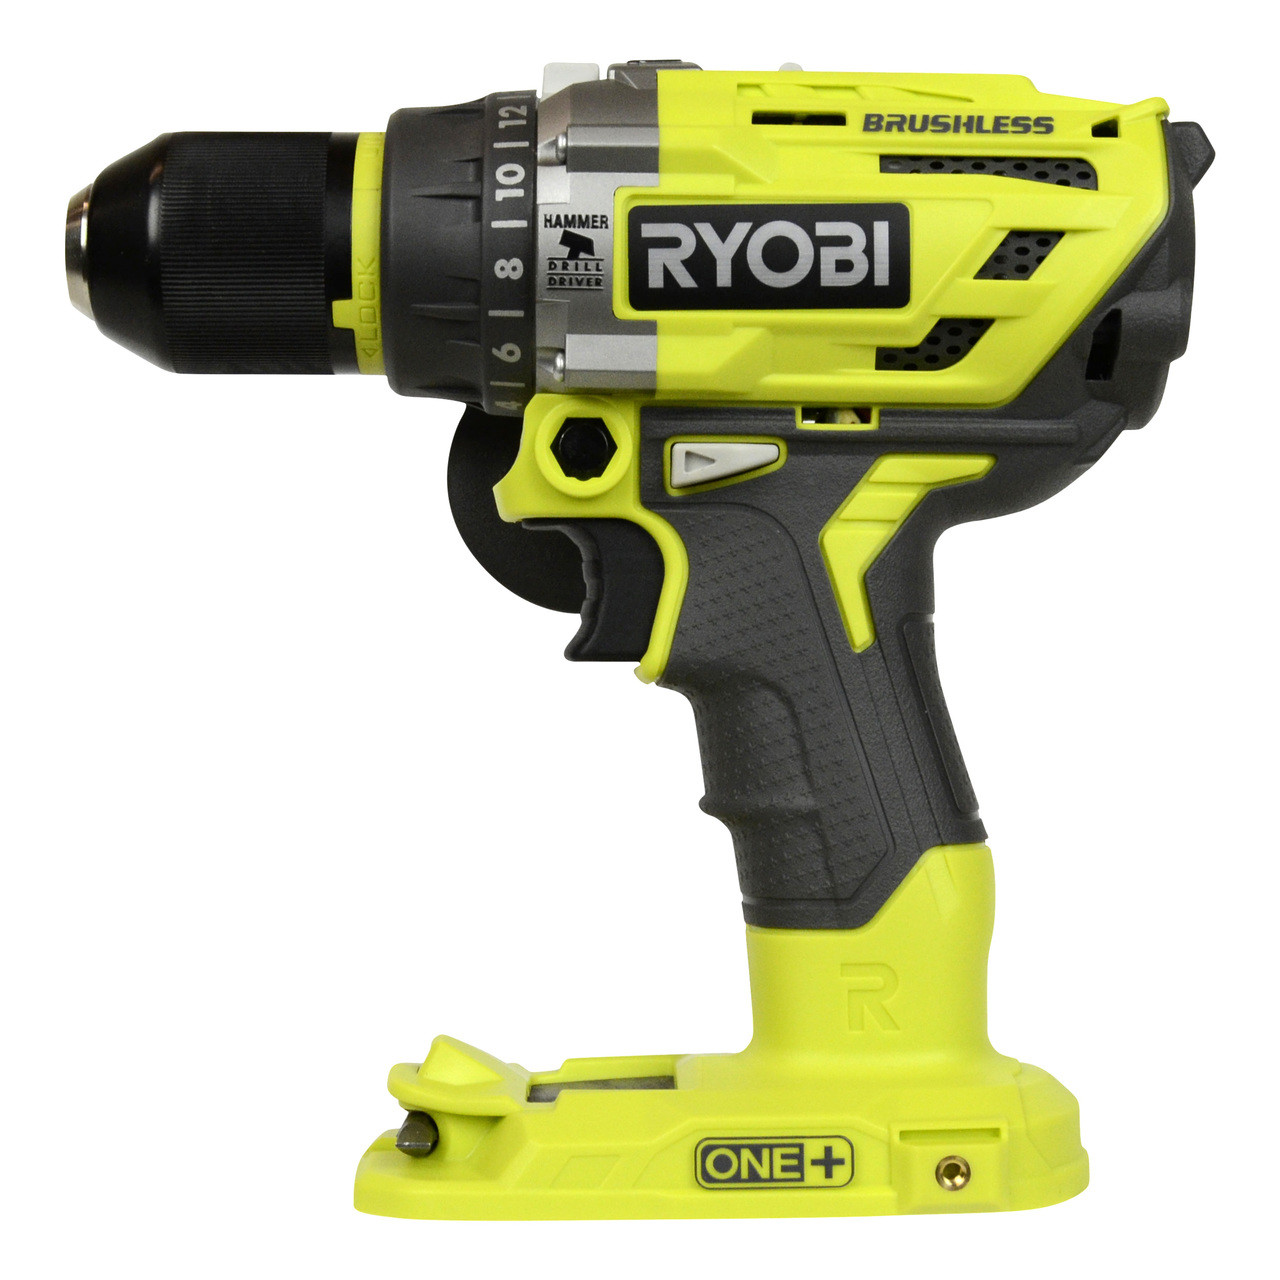 how to put a drill bit in a ryobi drill